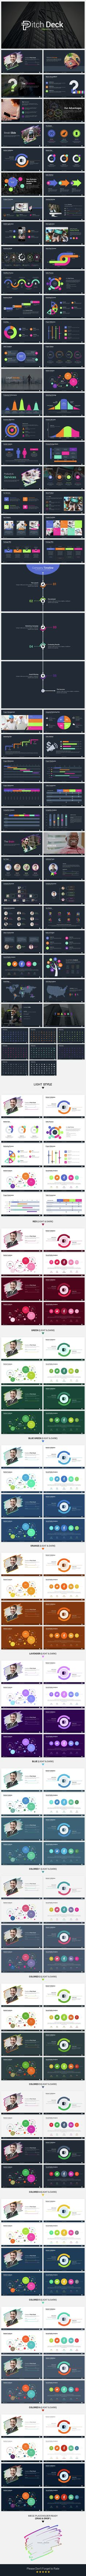 Creative Pitch Deck PowerPoint Template #College #Clean #Agency • Only available here! → https://graphicriver.net/item/creative-pitch-deck-powerpoint-template/14757455?ref=pxcr